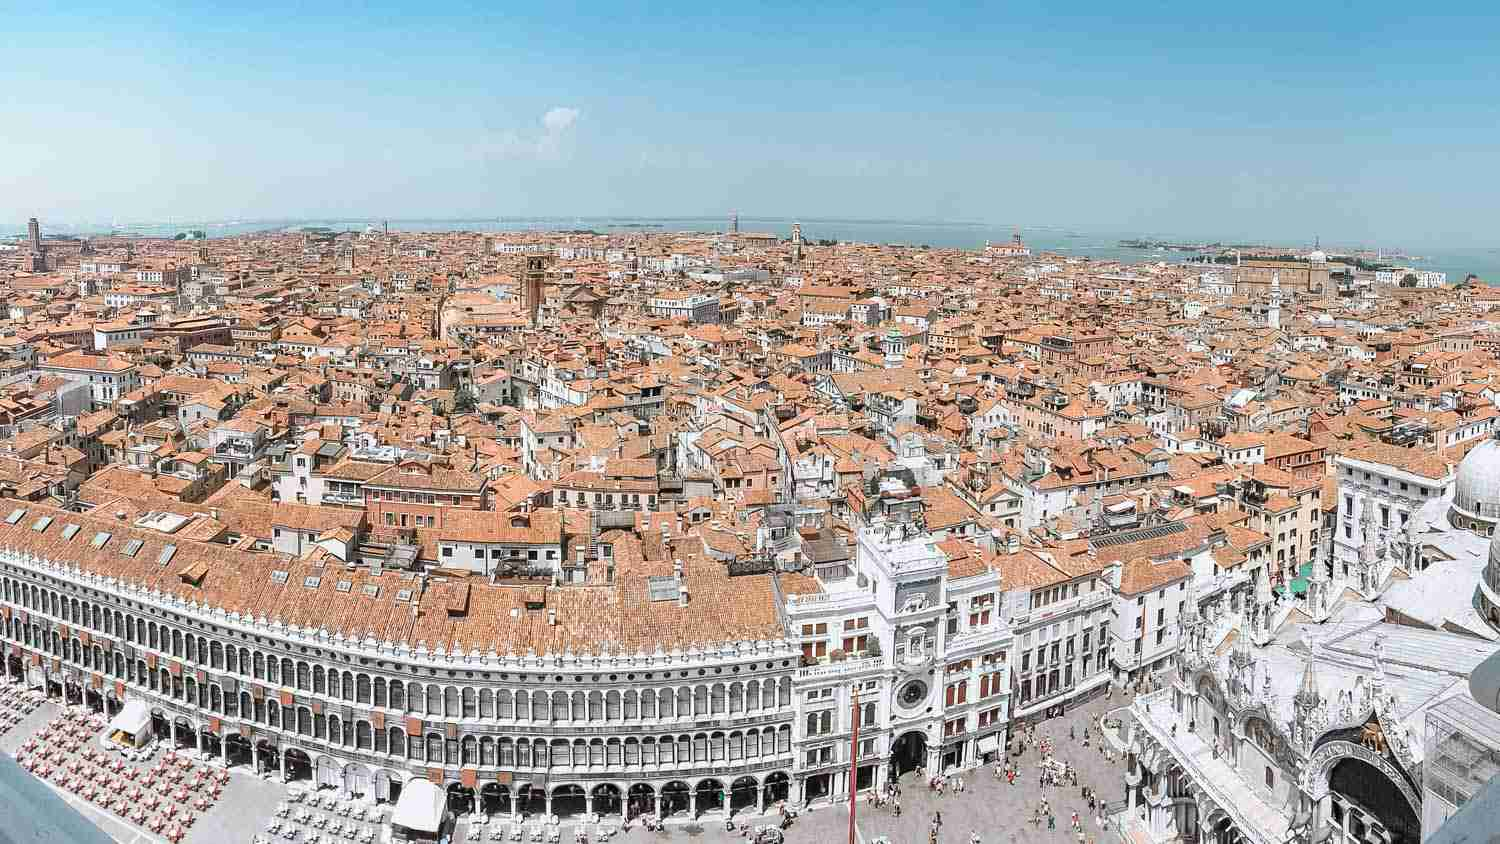 Aerial view of Venice from tower in St. Mark's square